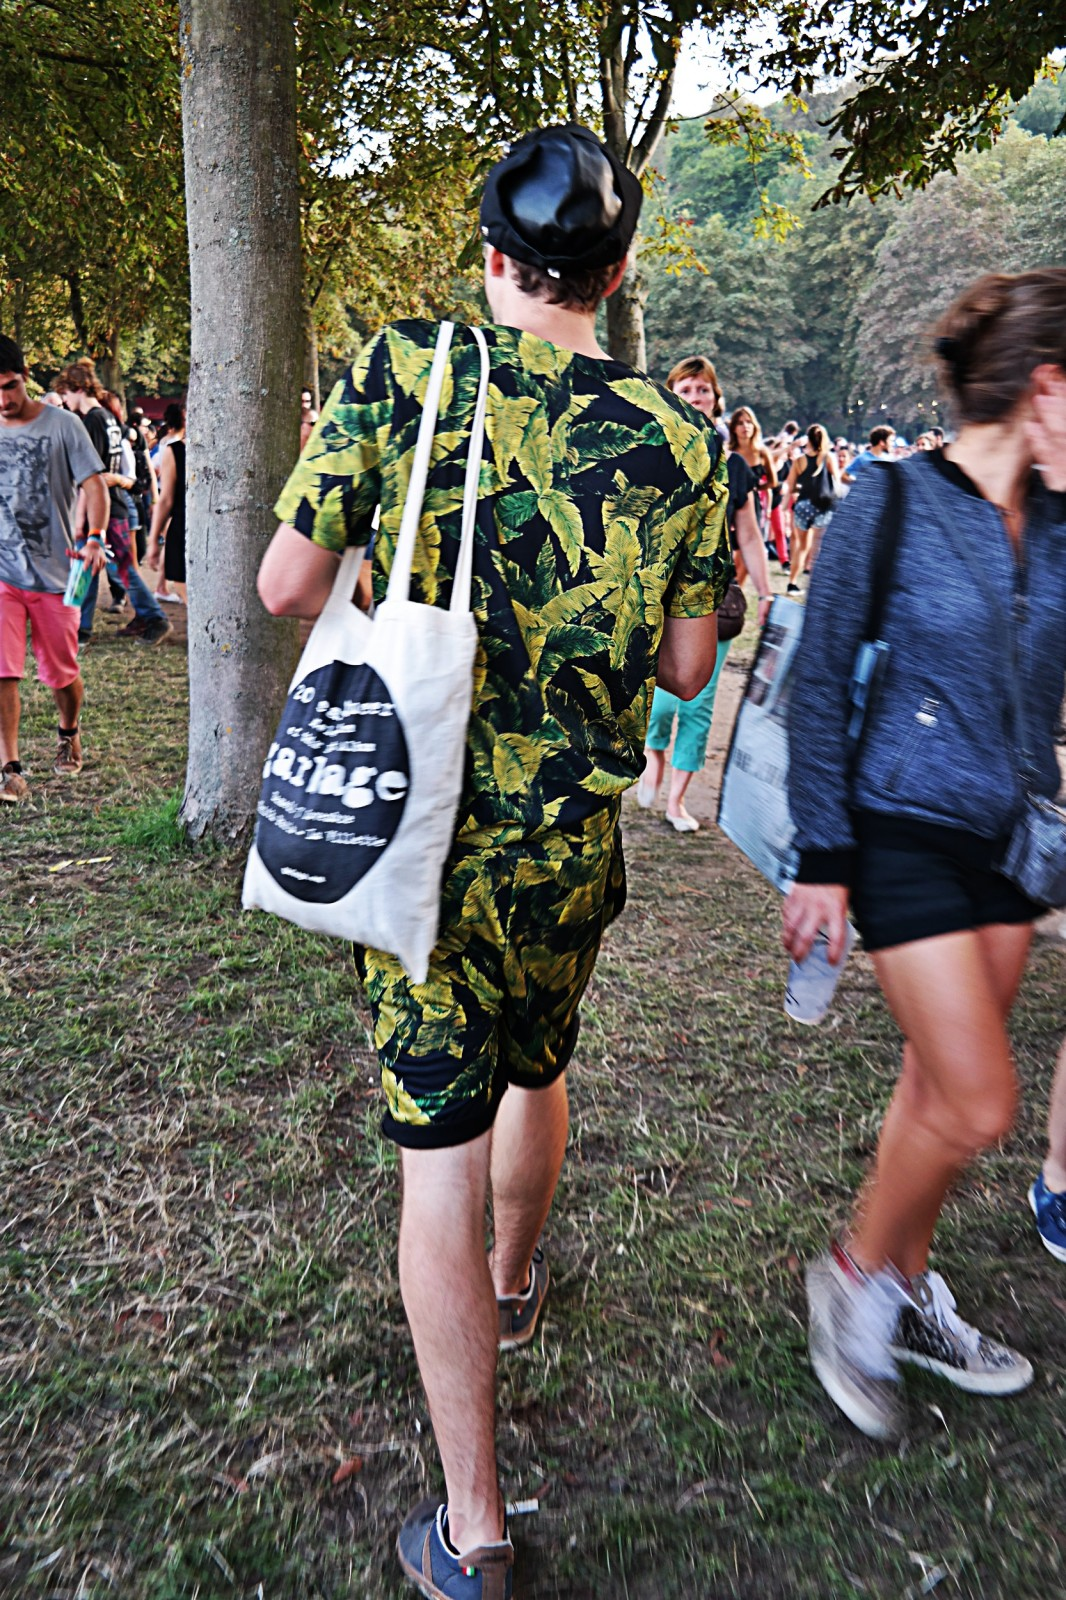 Festivalier habillé jungle festival rock en seine 2015 musique menswear fashion photo by united states of paris blog